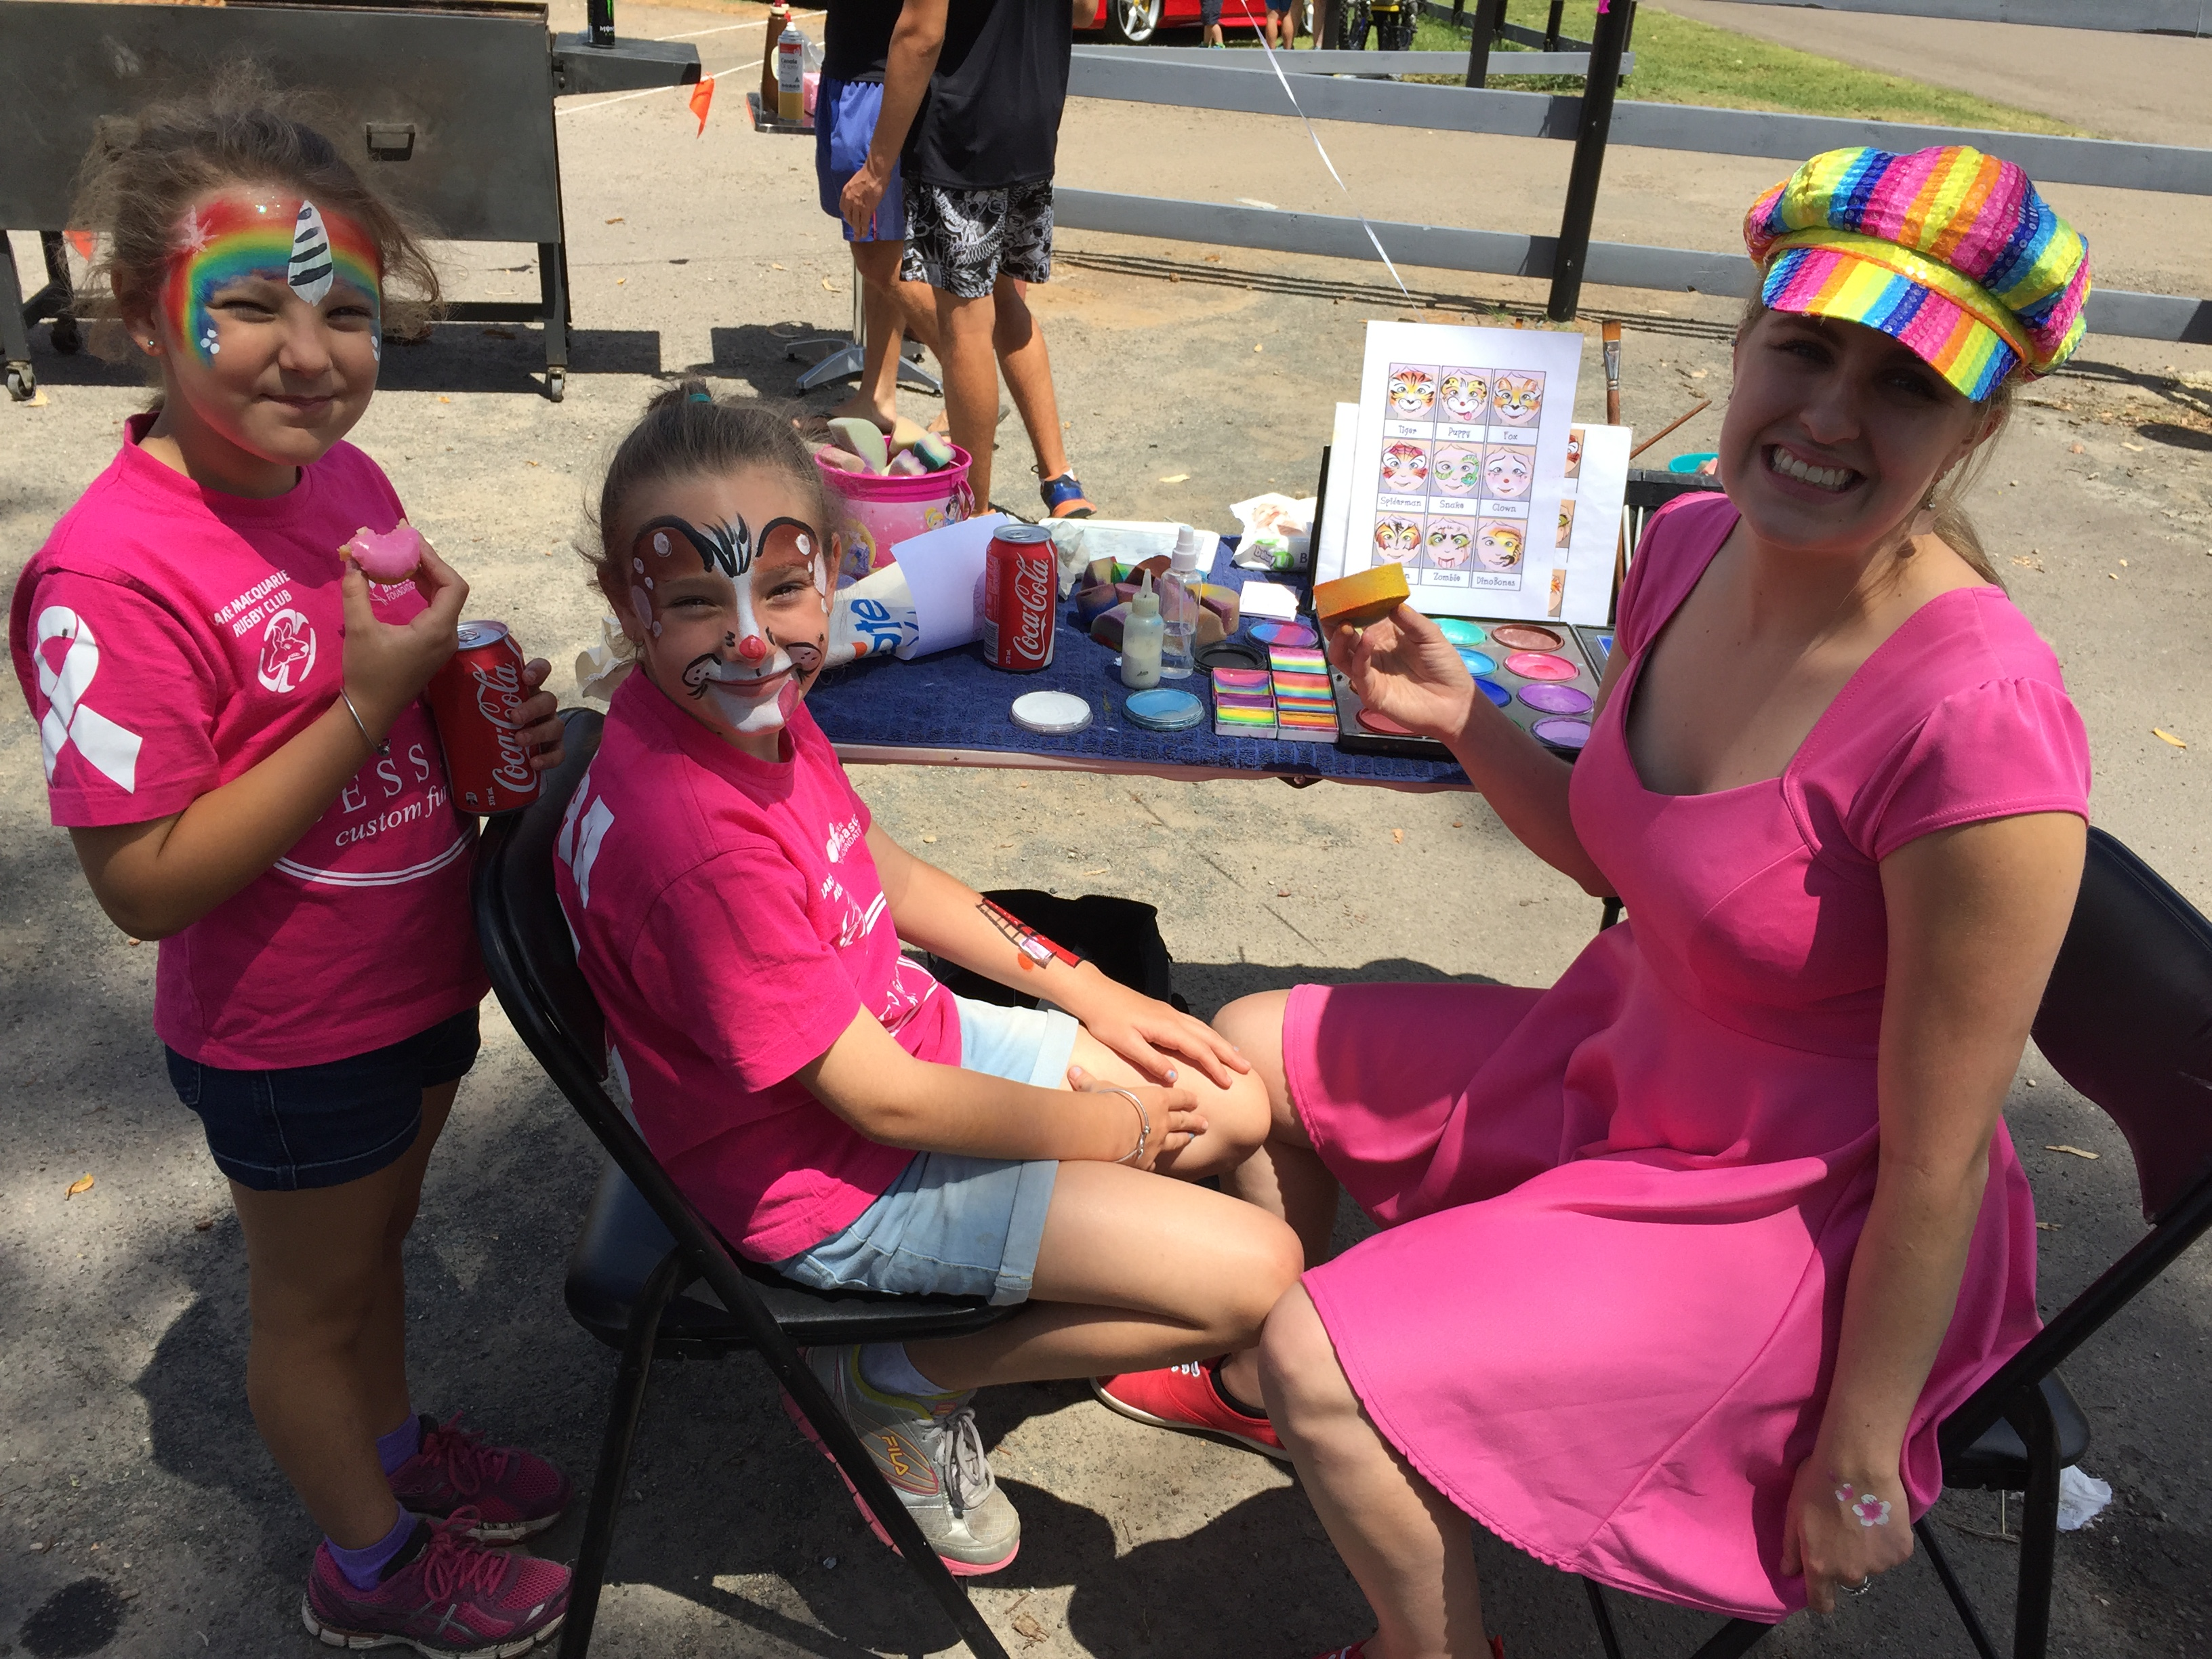 Face painting for the kids was a hit.